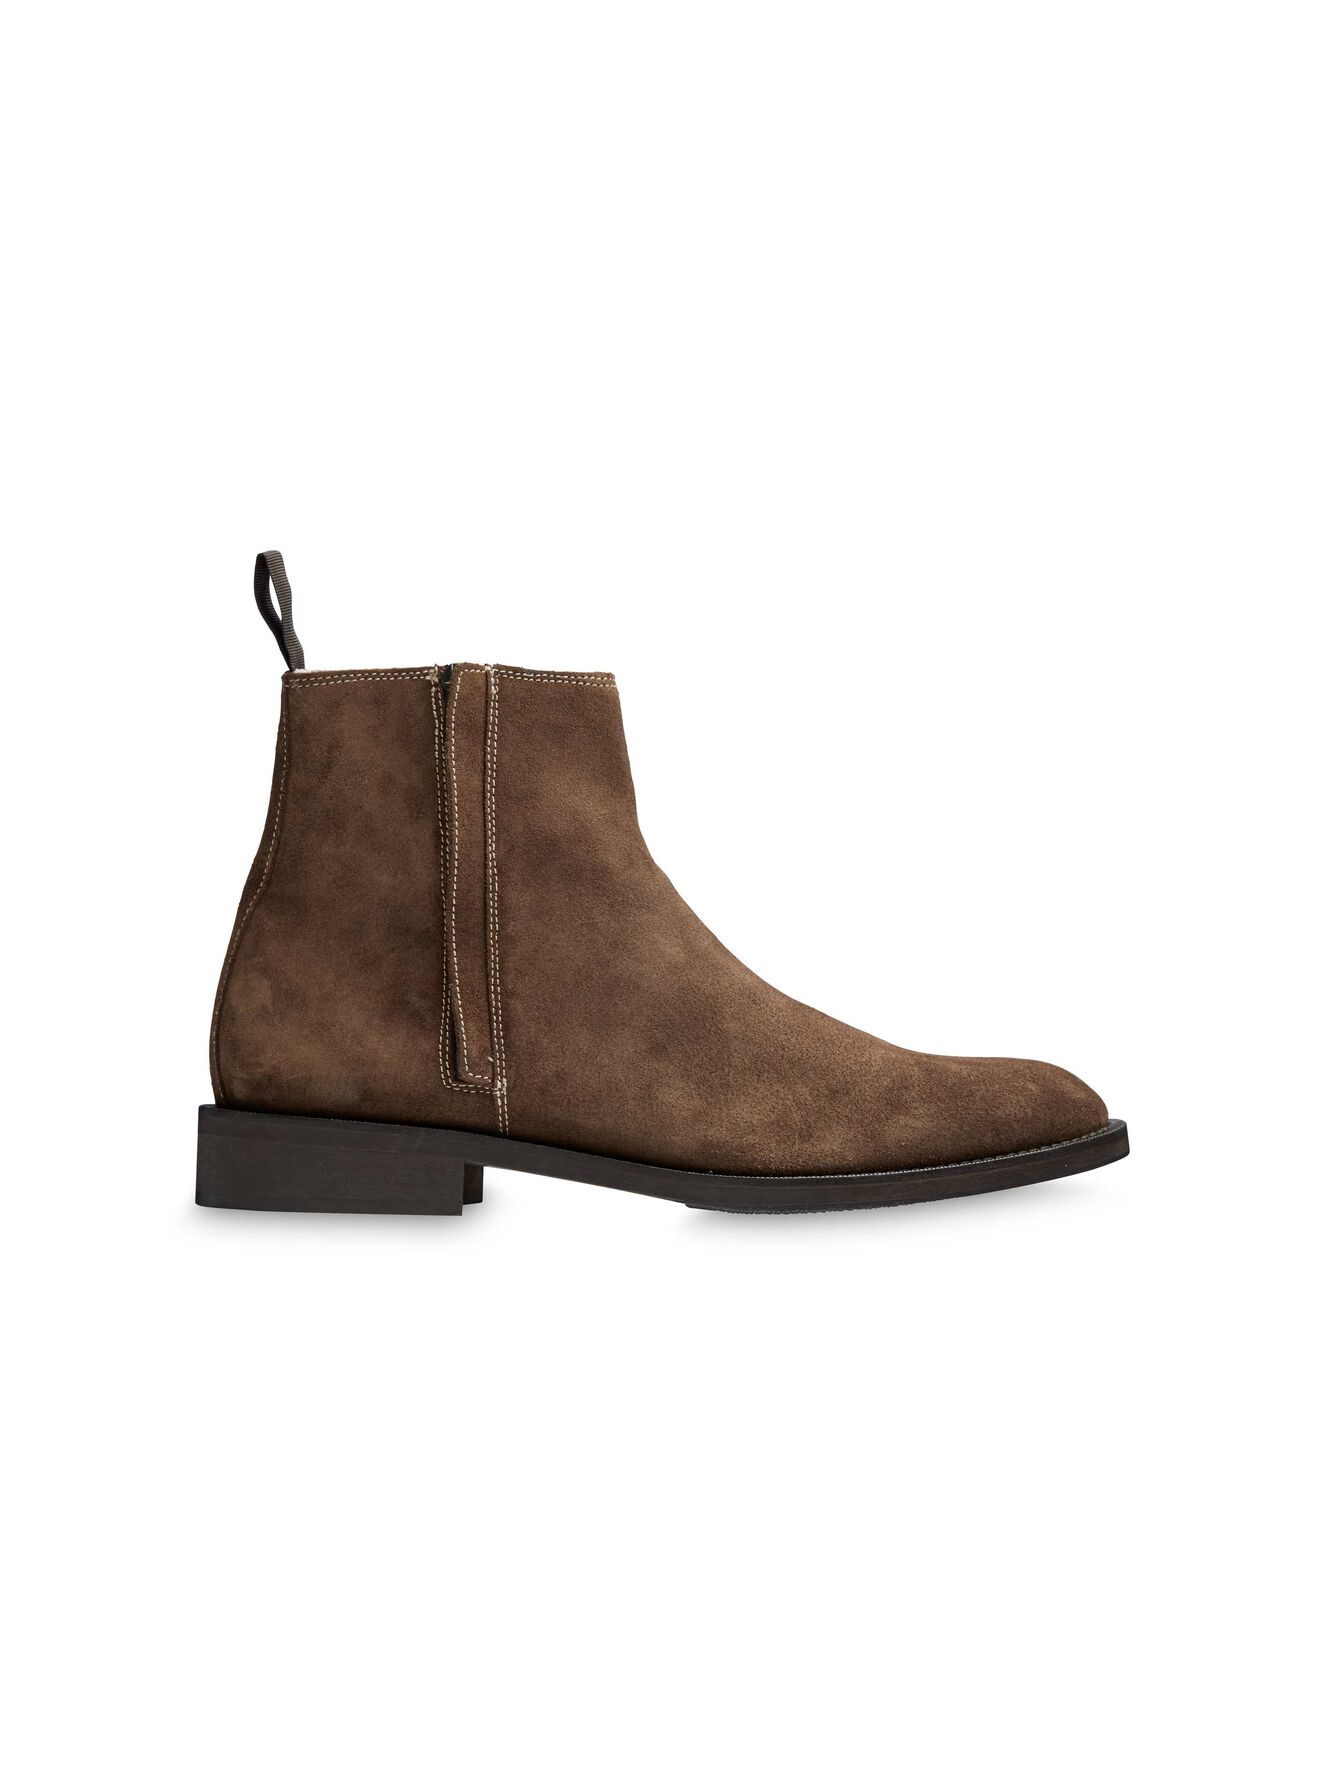 Rekryt S Boots in Chestnut from Tiger of Sweden